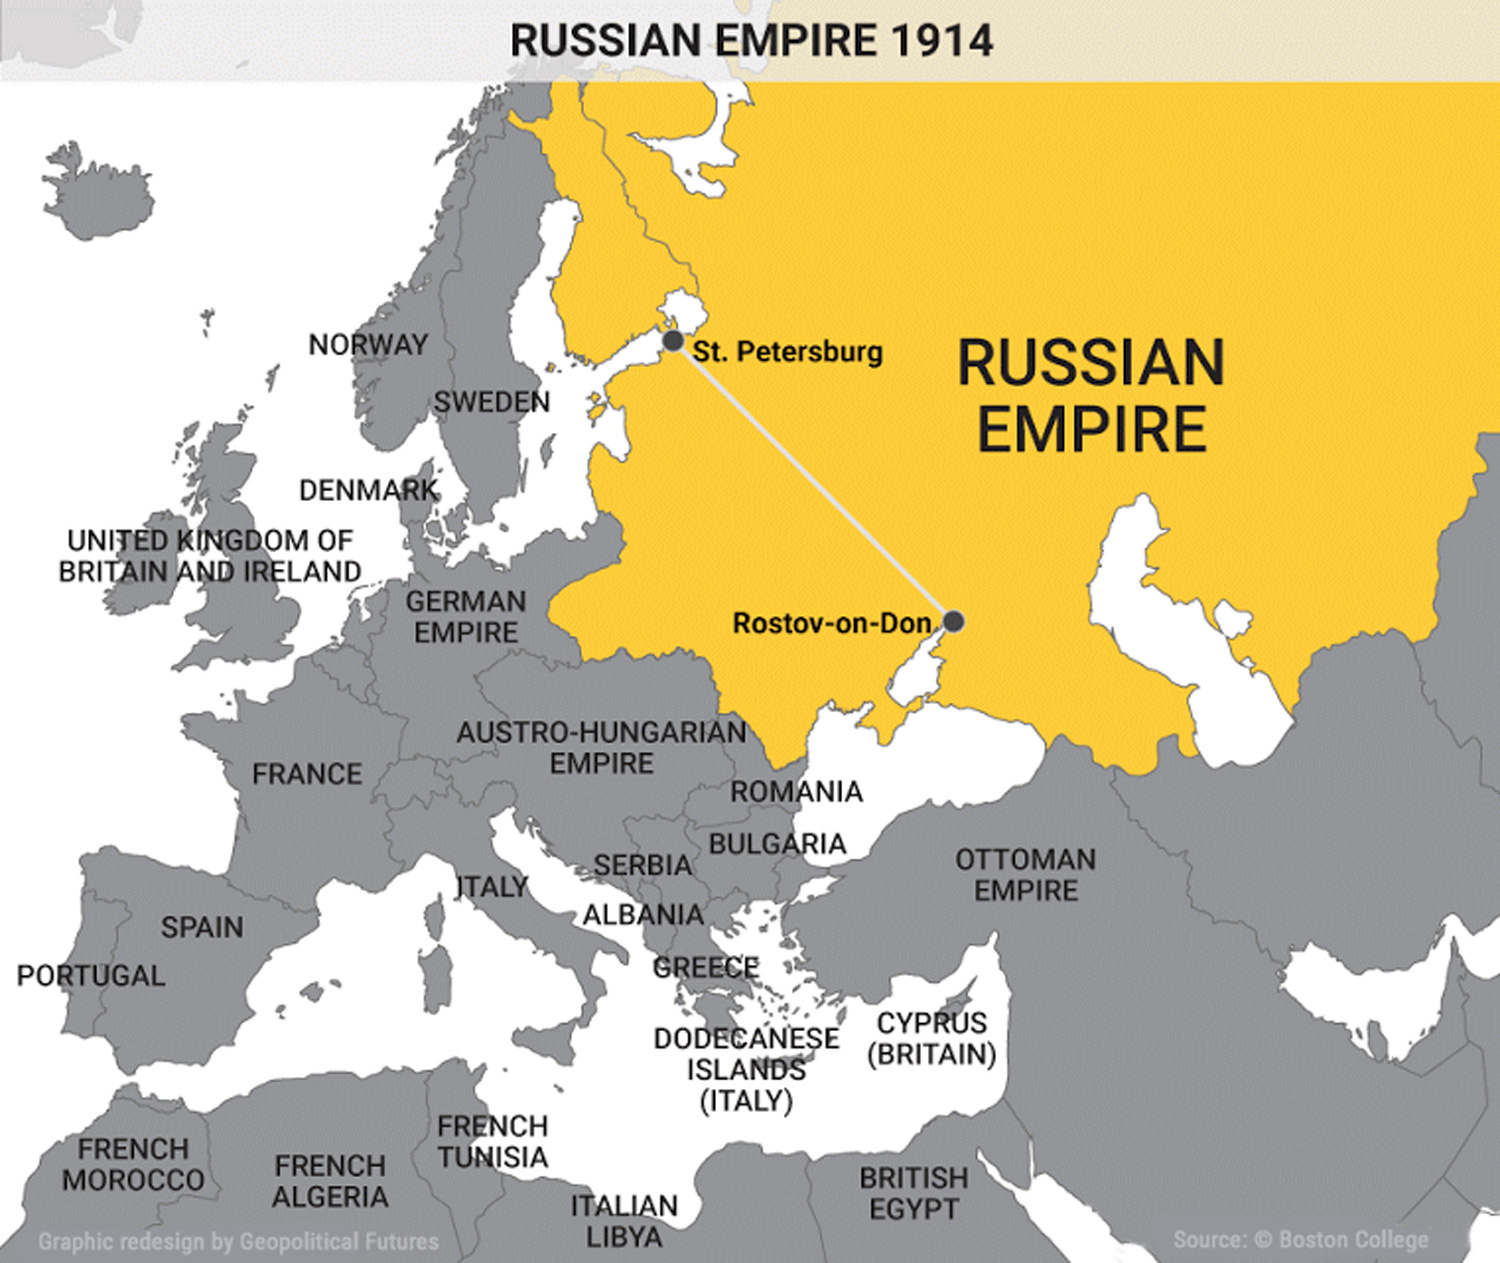 The geopolitical position of Russia